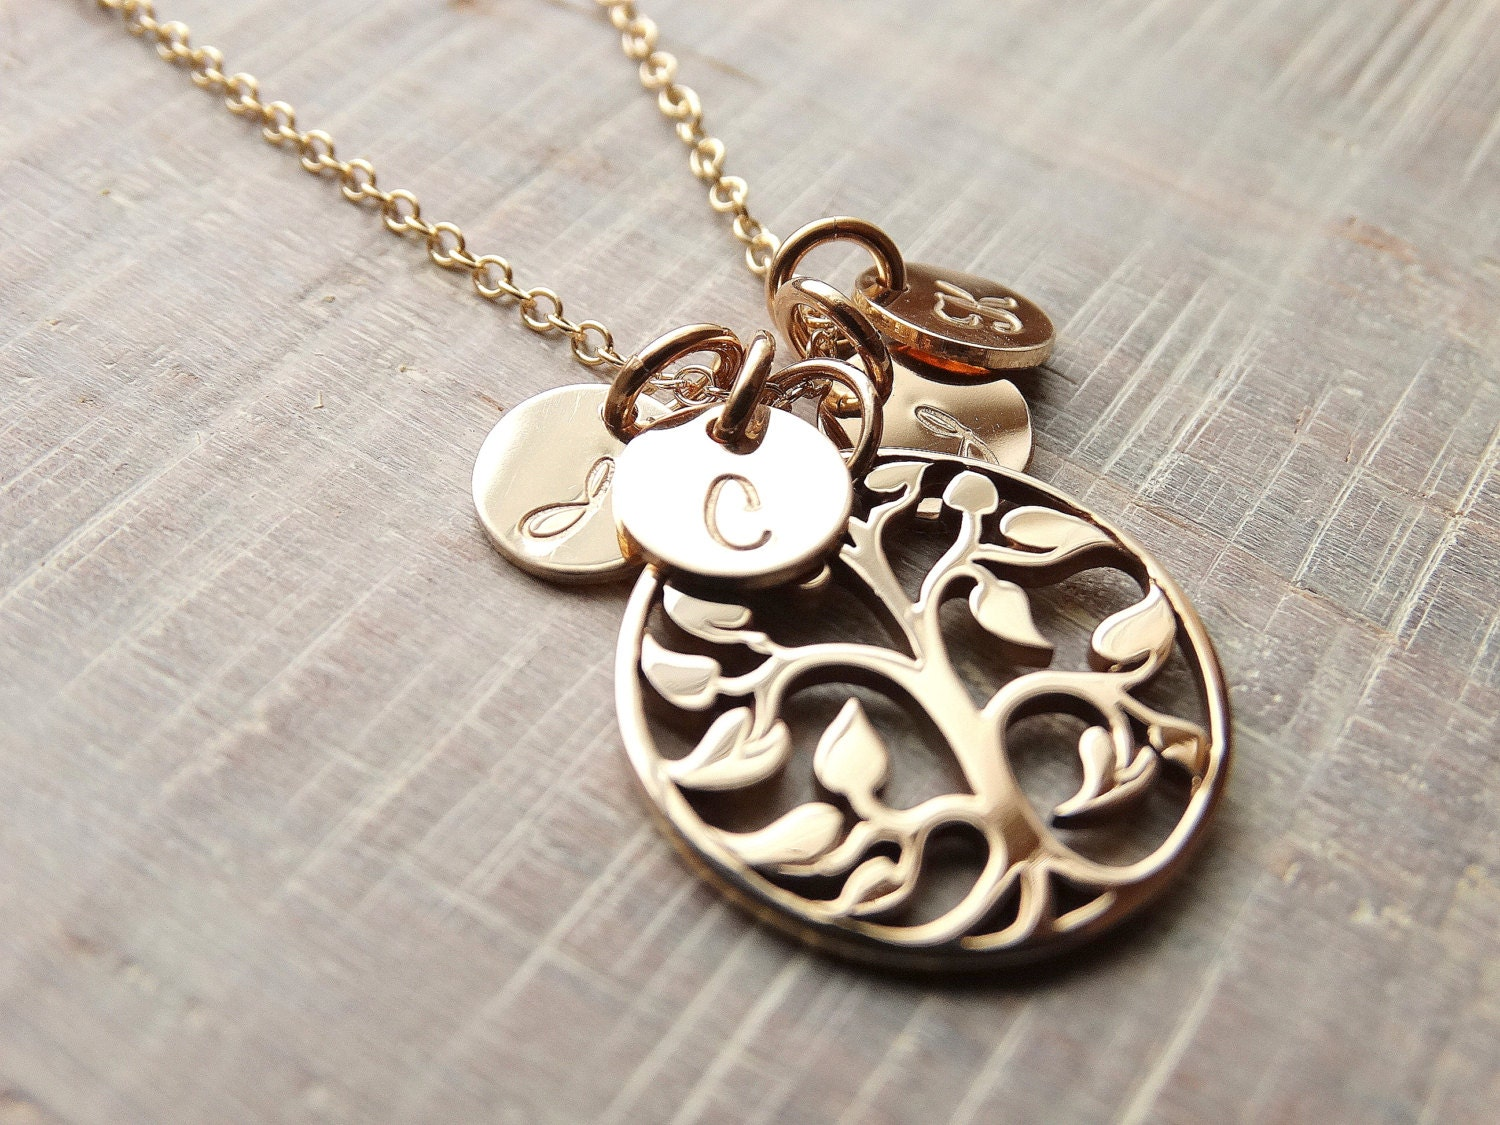 mothers necklace tree of life necklace jewelry necklace gold. Black Bedroom Furniture Sets. Home Design Ideas